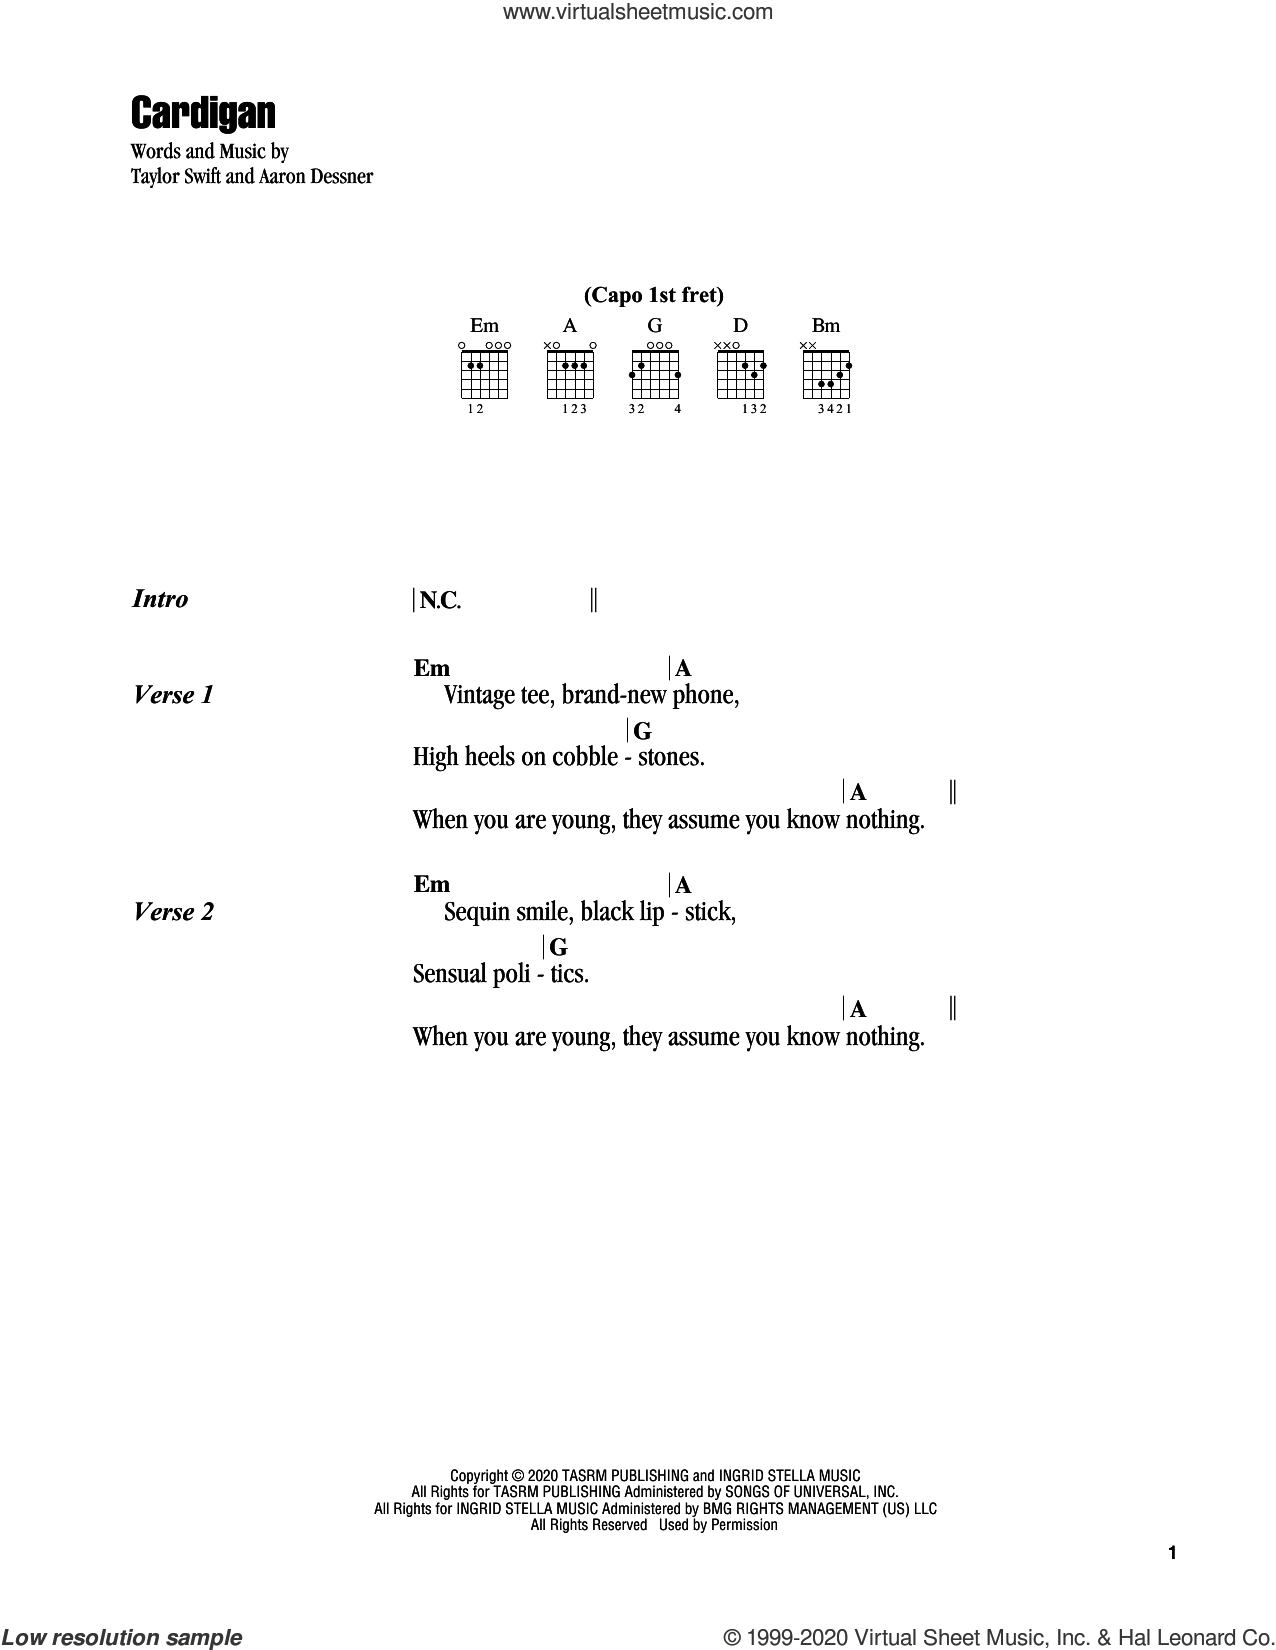 cardigan sheet music for guitar (chords) by Taylor Swift and Aaron Dessner, intermediate skill level